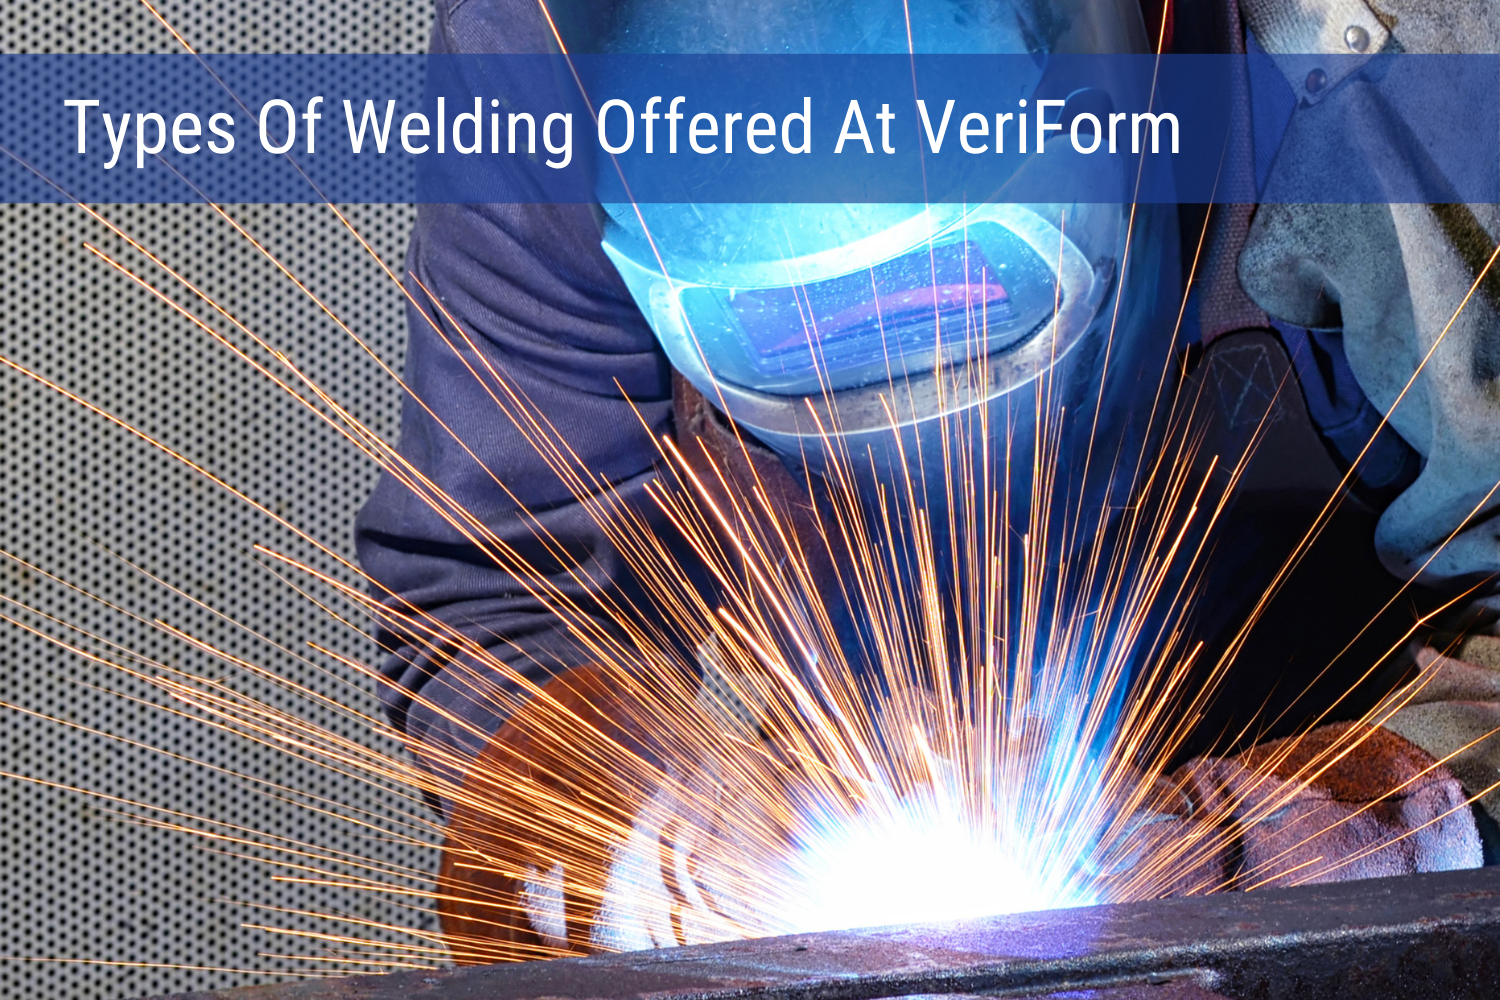 Types Of Welding Offered At VeriForm